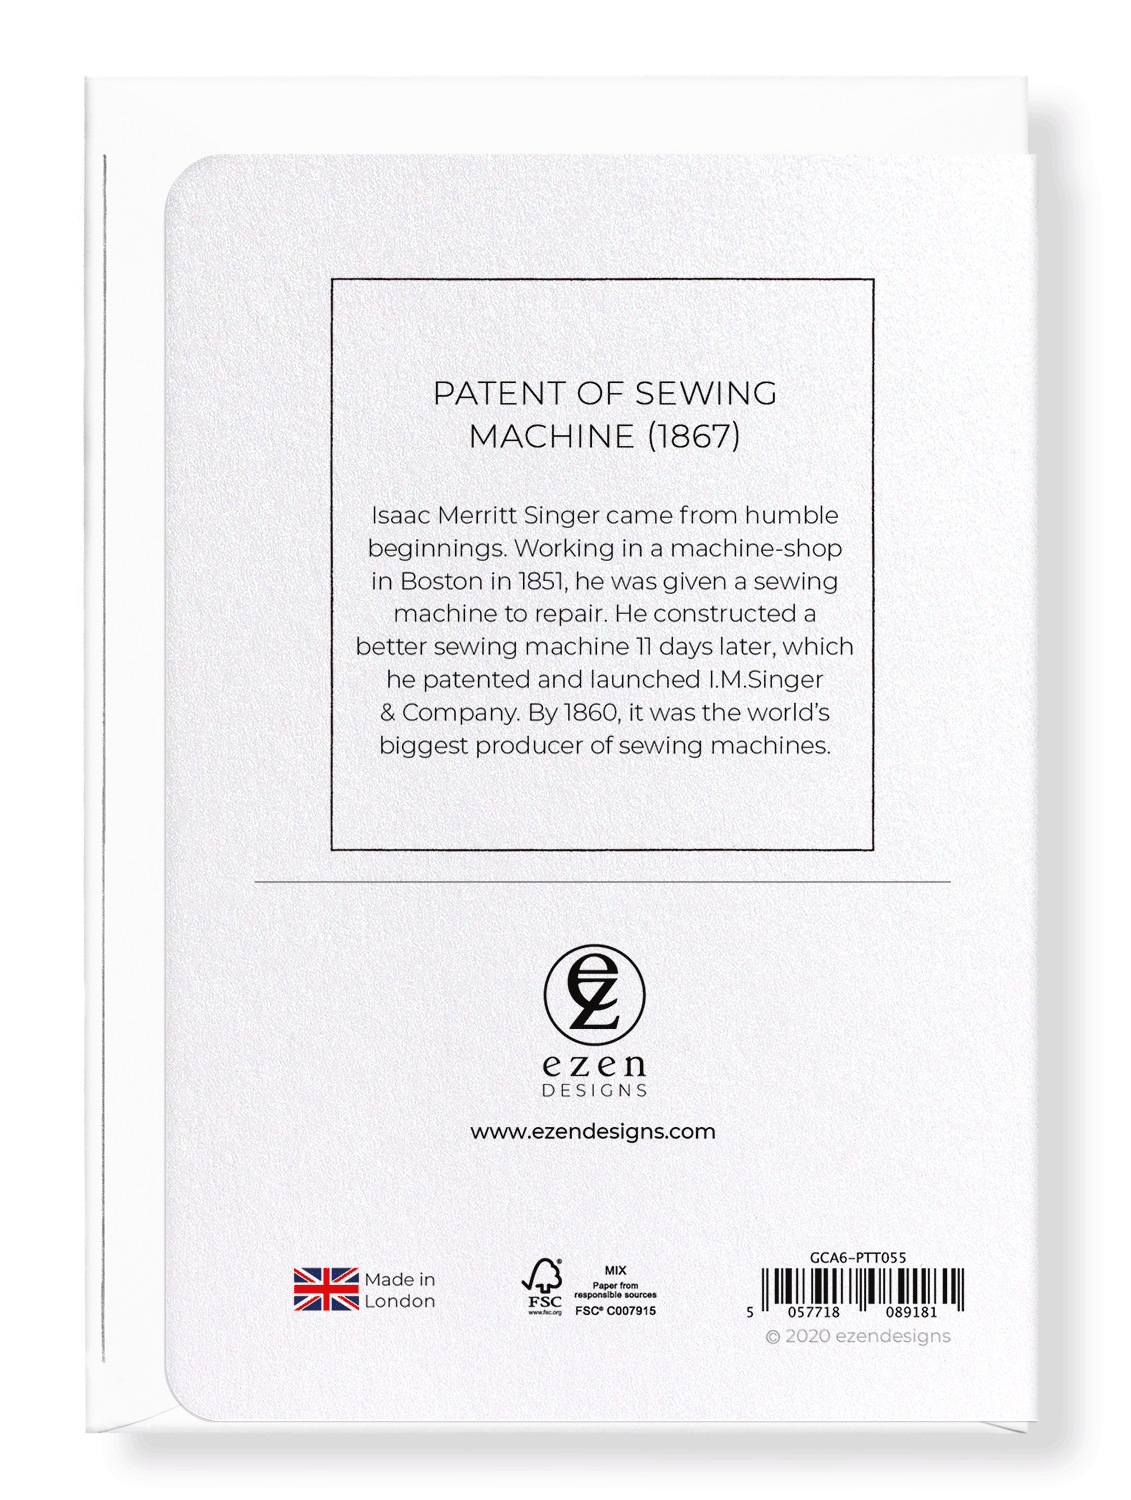 Ezen Designs - Patent of sewing machine (1867) - Greeting Card - Back